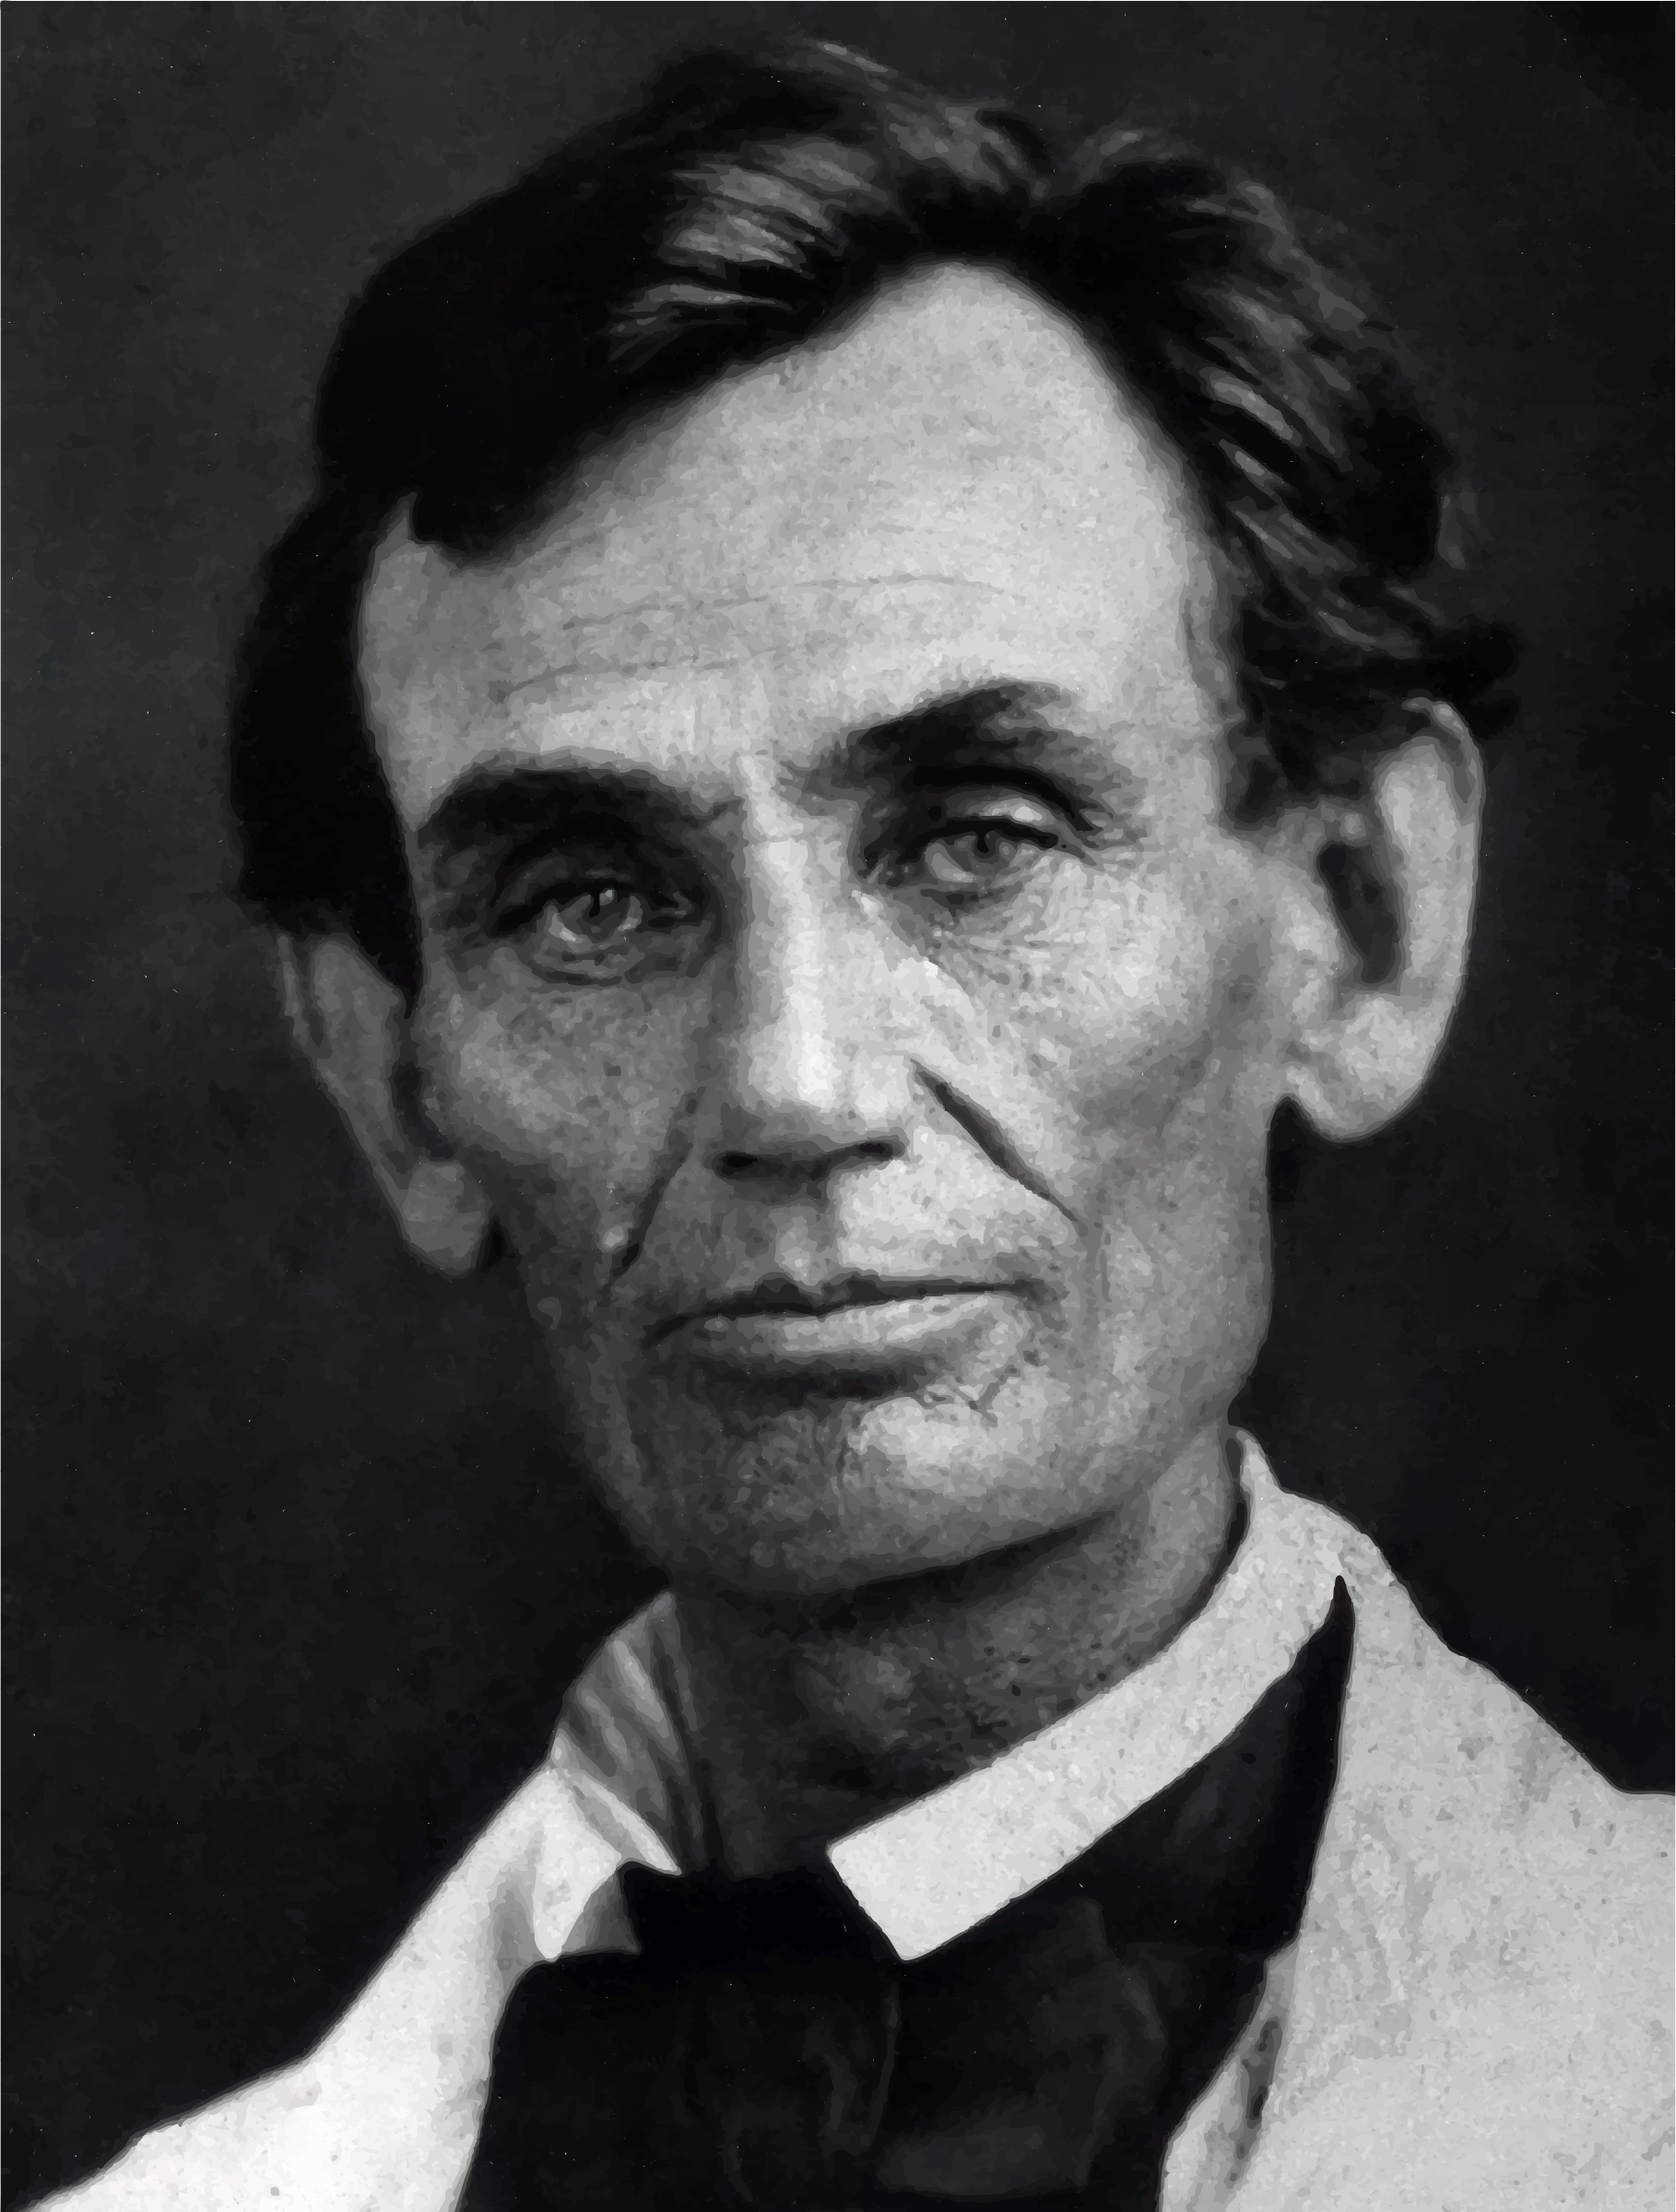 Abraham Lincoln Photograph 1858 by GDJ